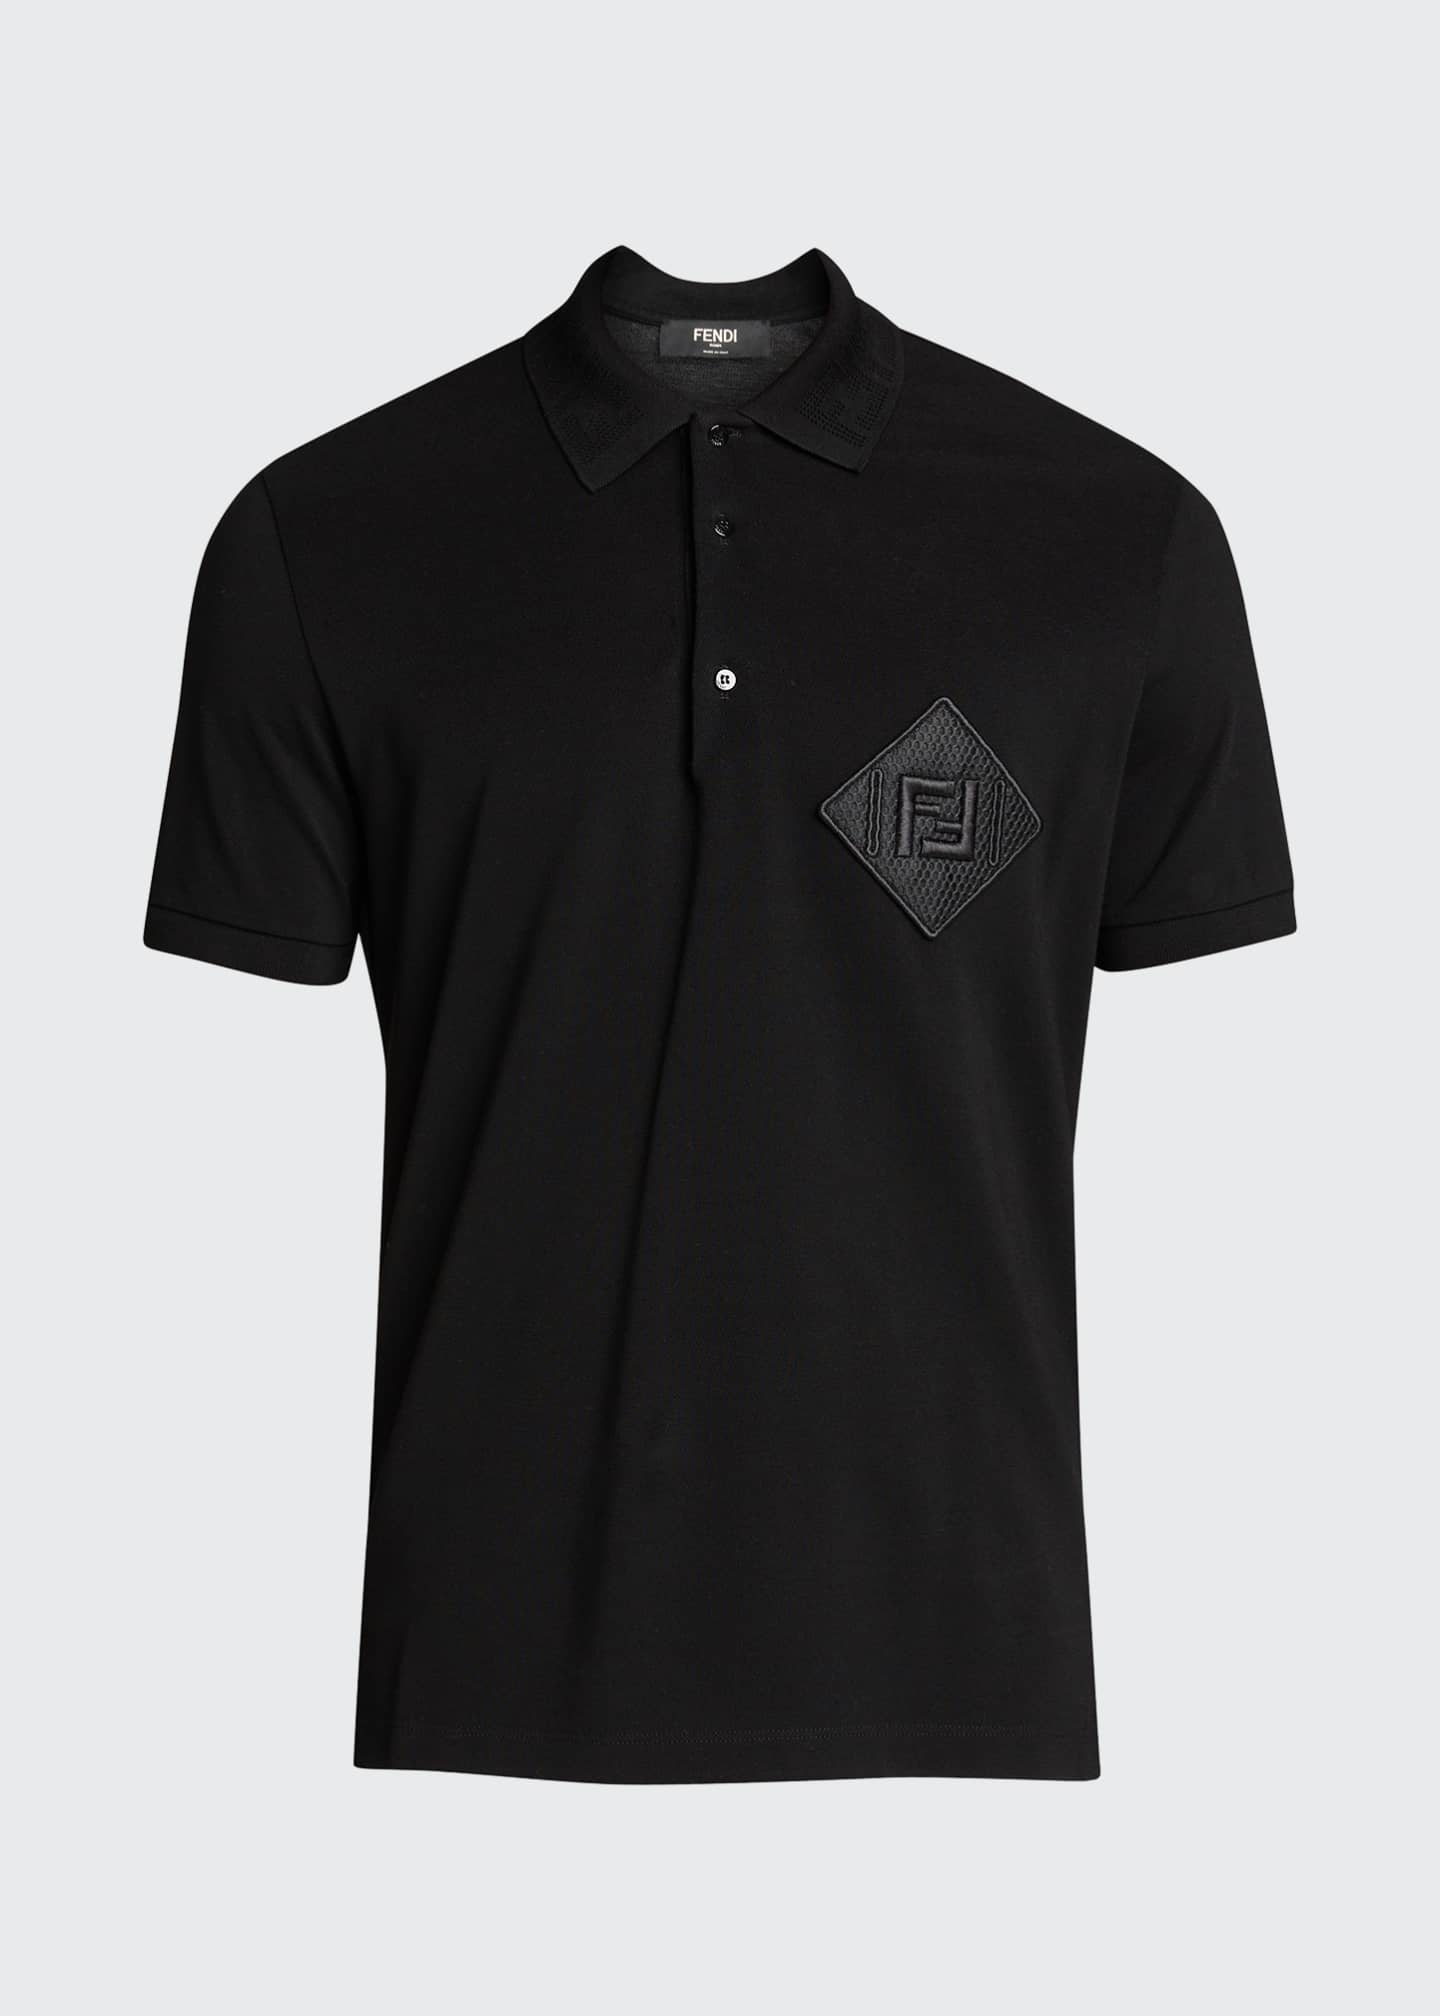 Image 5 of 5: Men's Pique Polo Shirt w/ Mesh FF Patch